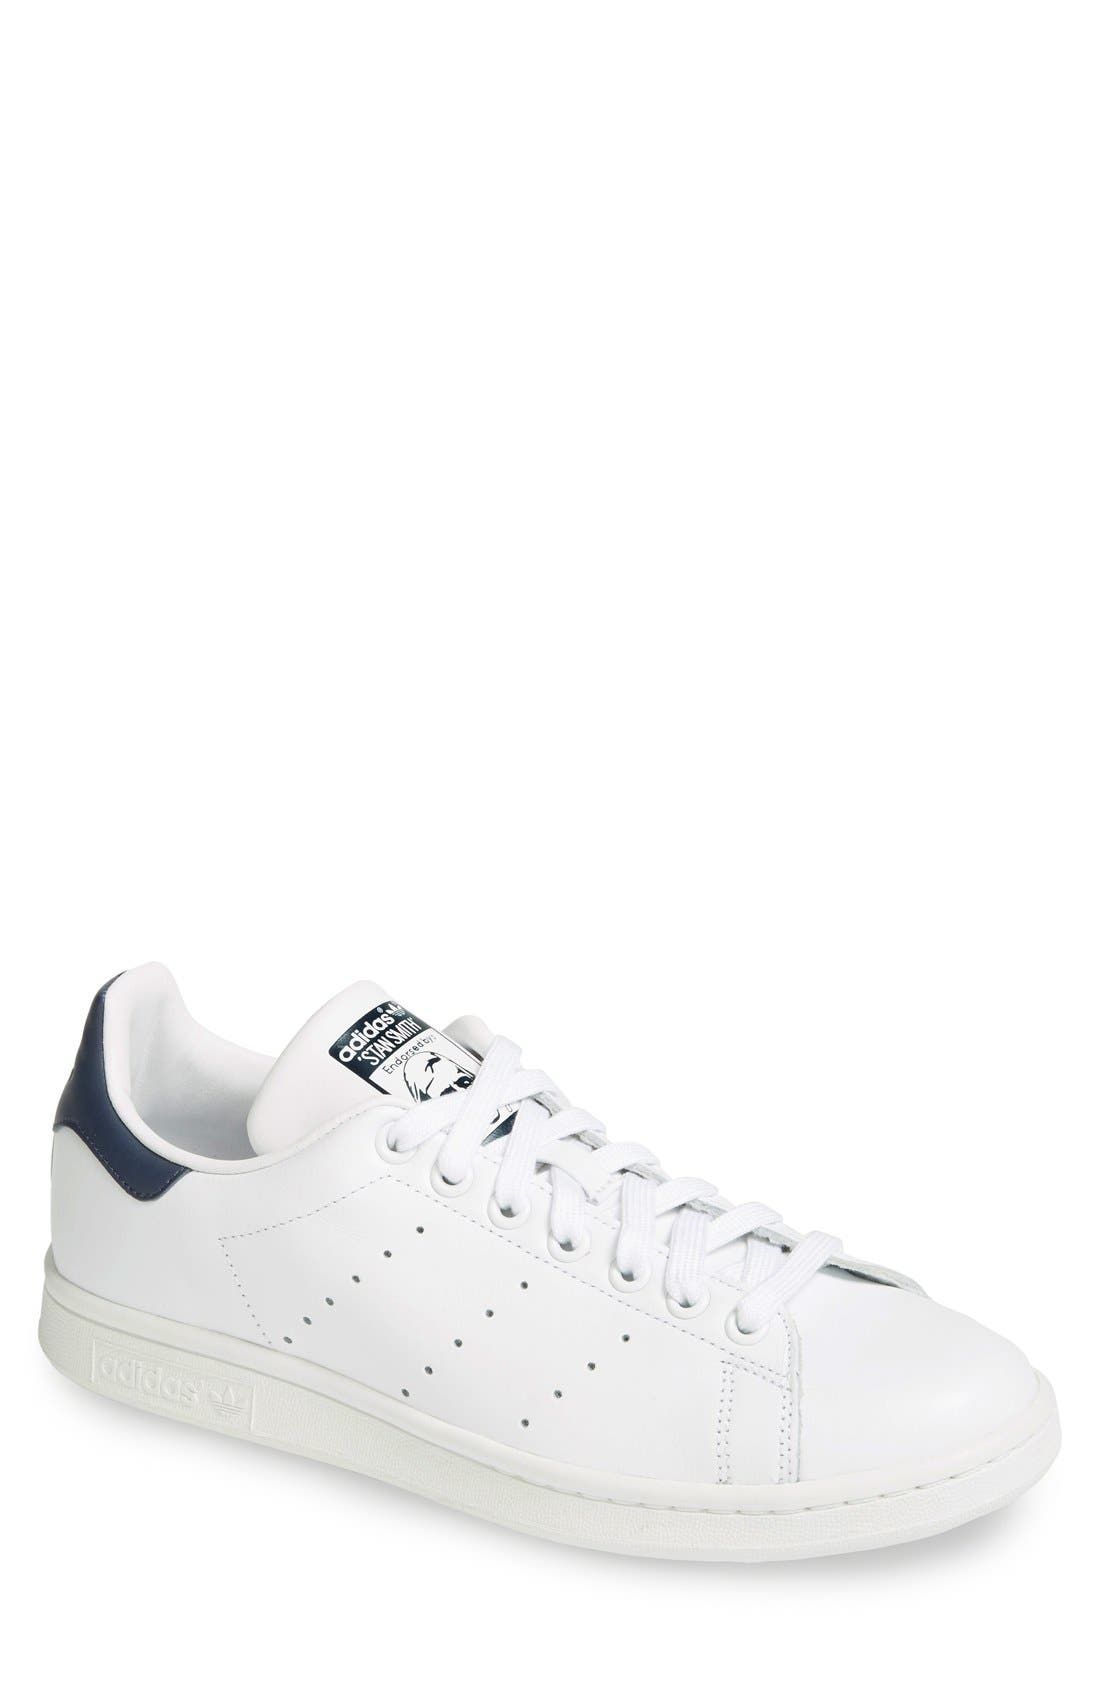 reputable site d99f1 f2cb6 adidas Shoes, Pants, Shirts, Watches   More   Nordstrom